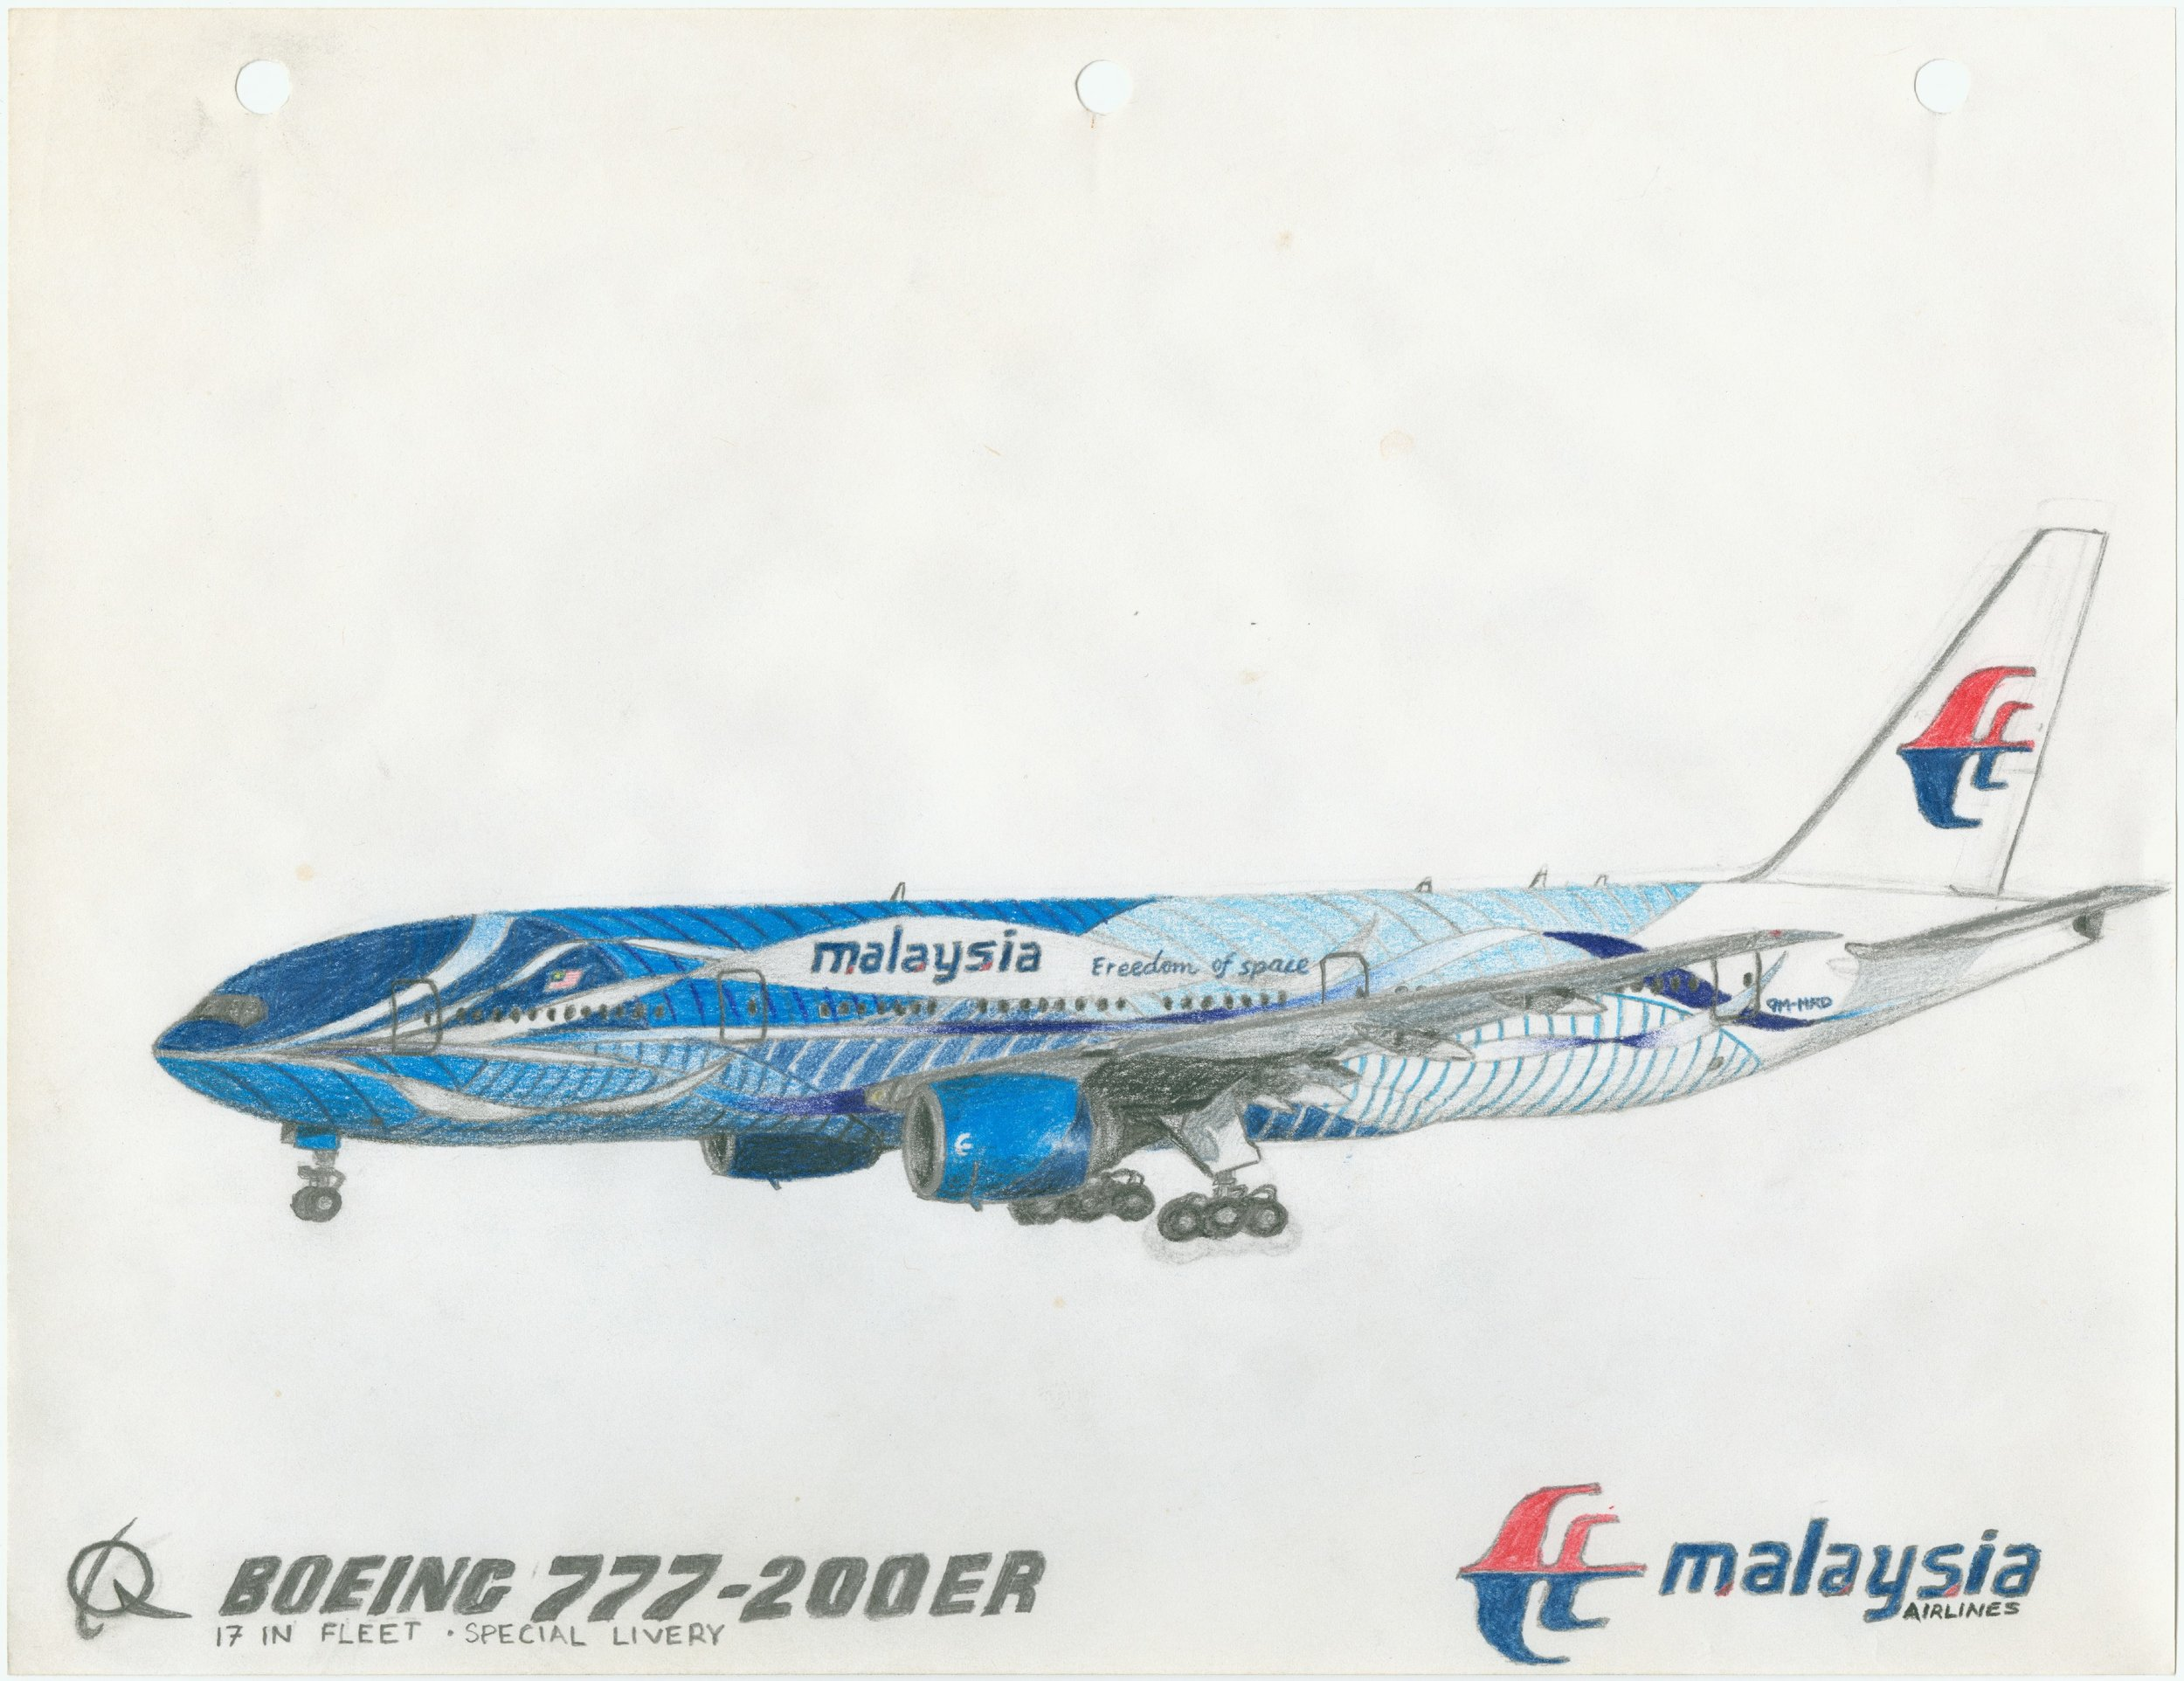 2007 - 006 - Malaysia Airlines planes.pdf0002.jpg